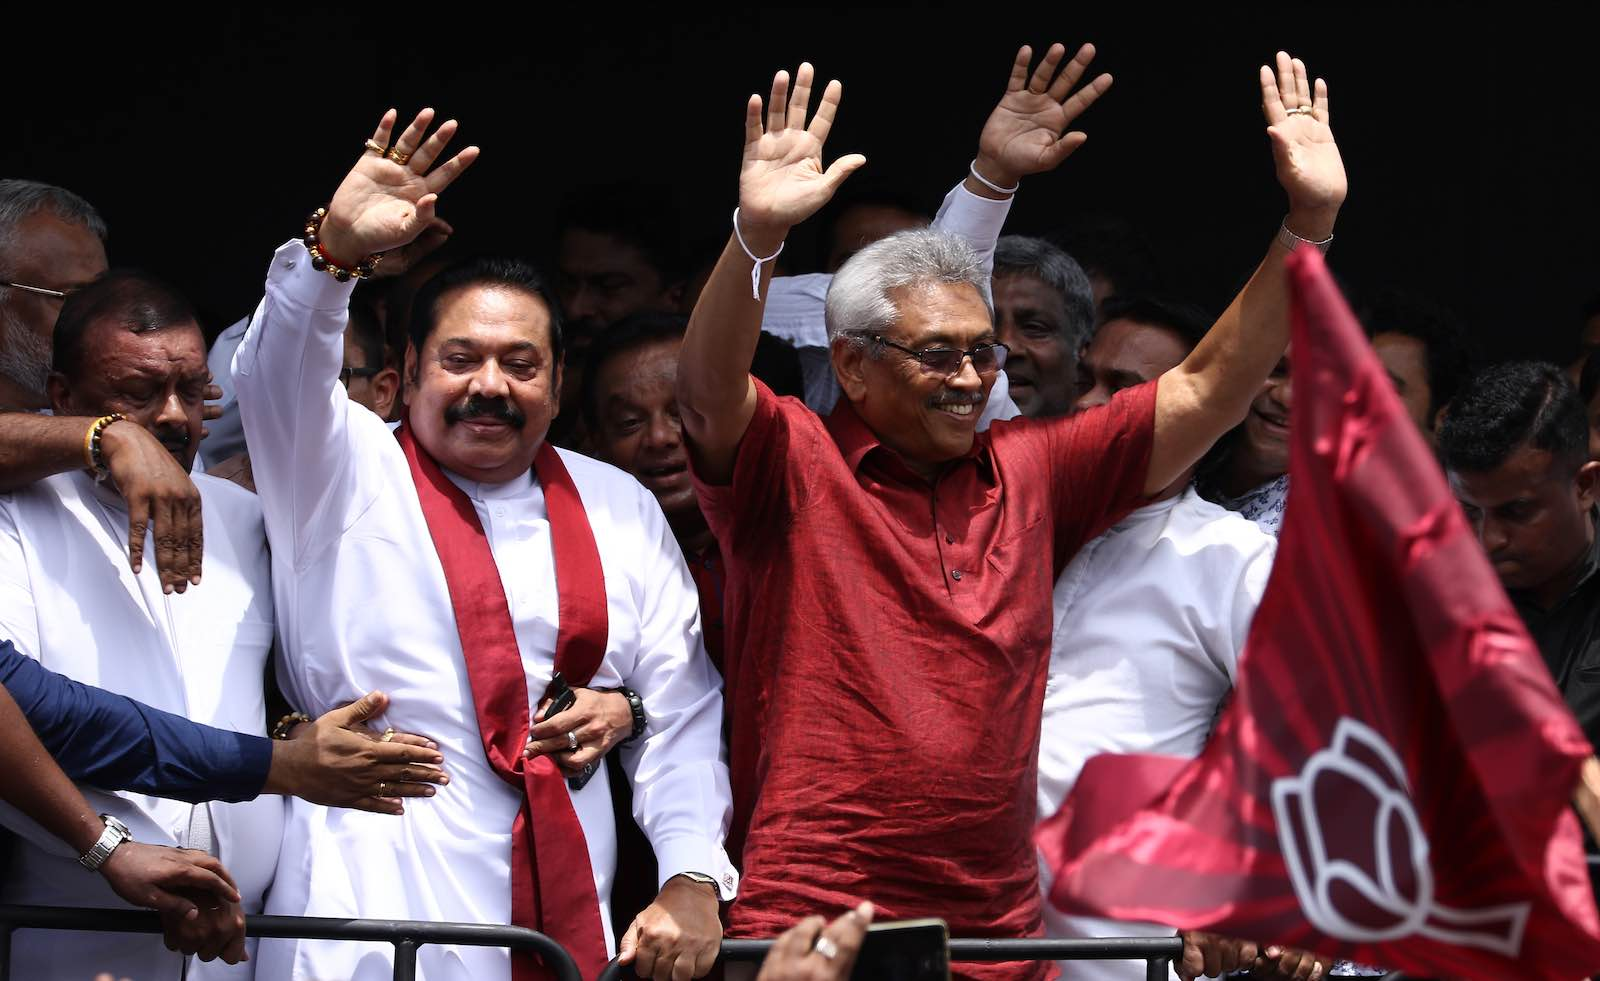 Sri Lankan presidential candidate Gotabaya Rajapaksa (R) and his brother, former president Mahinda Rajapaksa (L), greet supporters in Colombo, 7 October 2019. (Photo by Tharaka Basnayaka/NurPhoto via Getty)